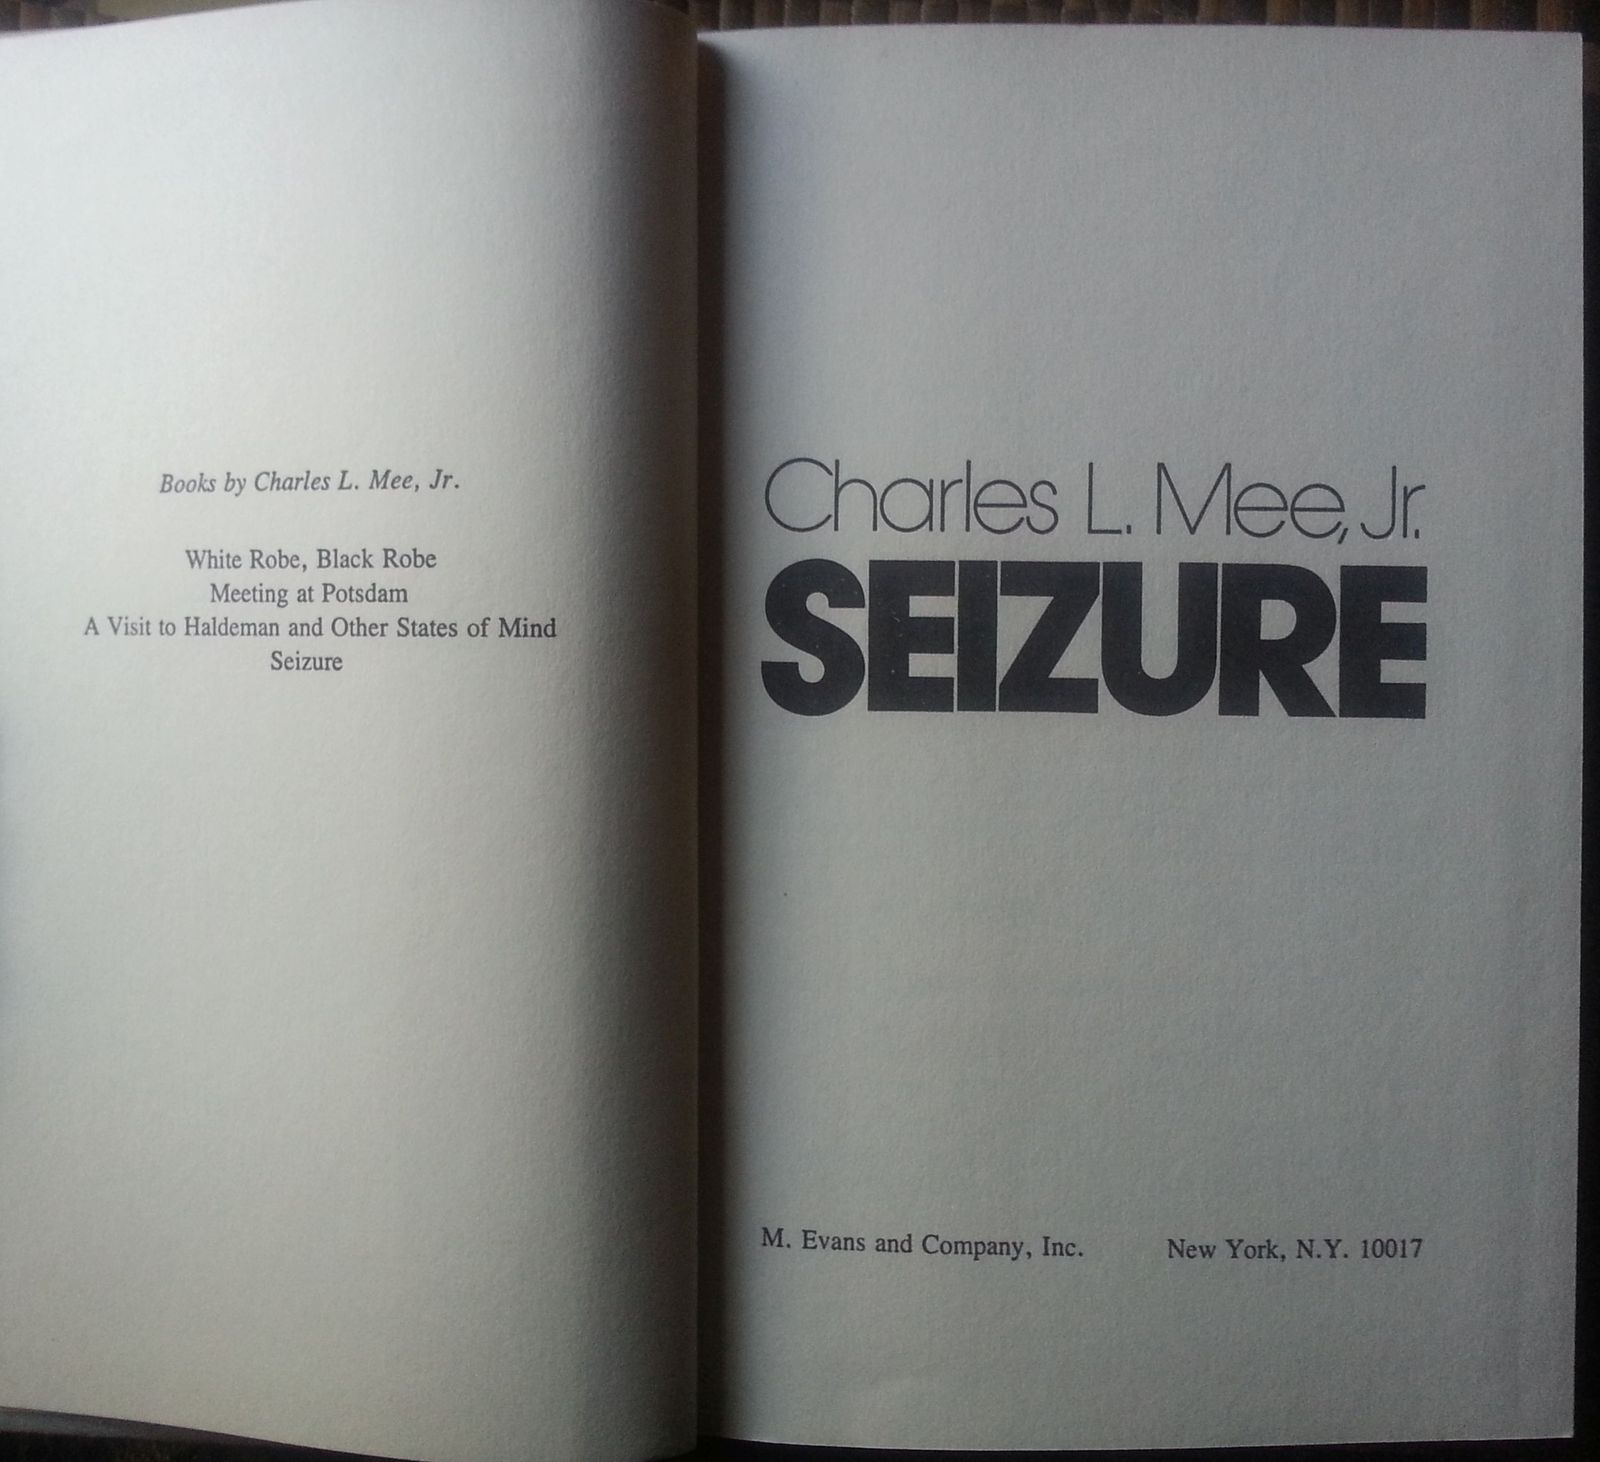 Seizure by Charles L. Mee, Jr. 1978 HBDJ Lose Ability to Sing?